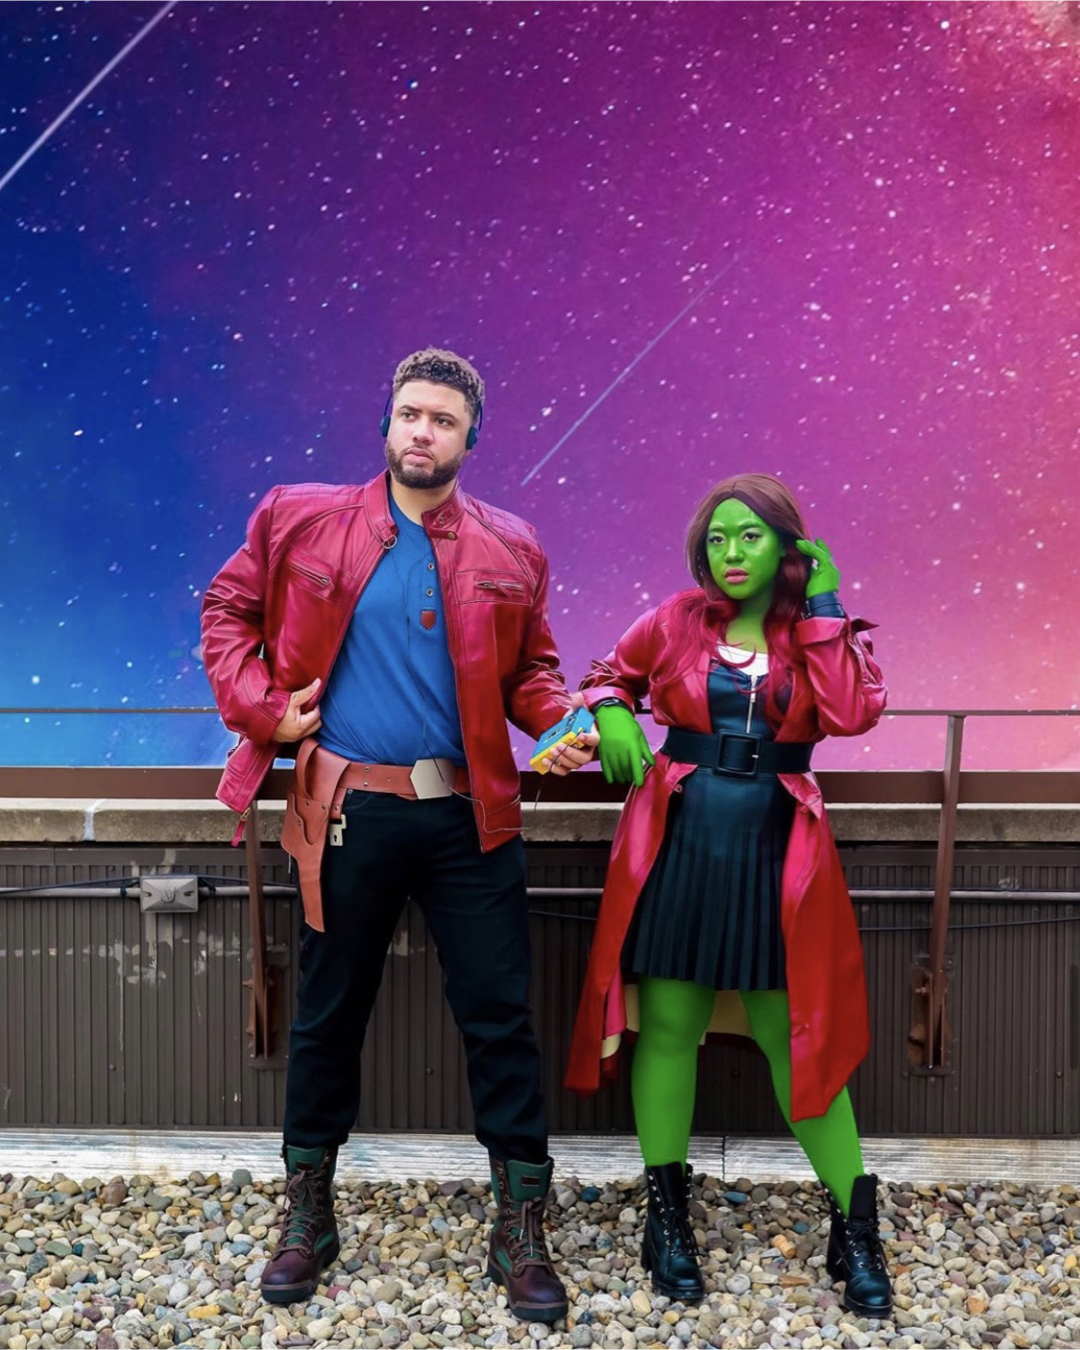 STARLORD & GAMORA COSTUME from Guardians of the Galaxy